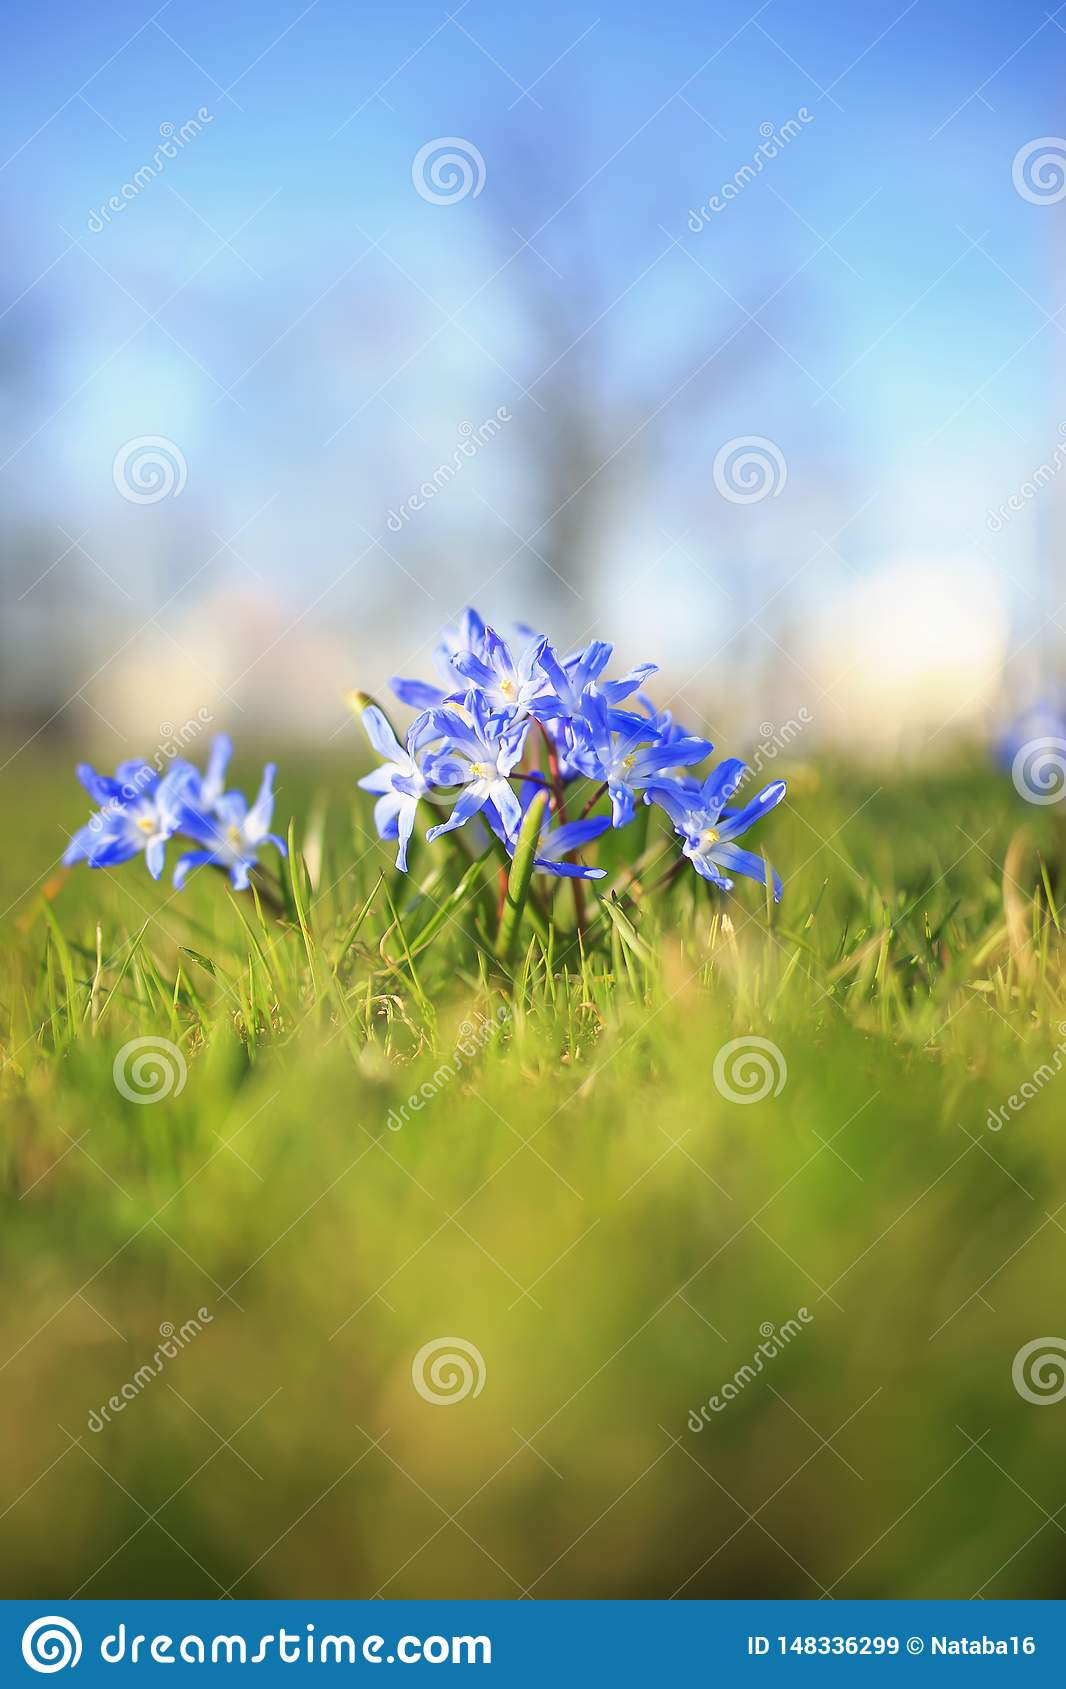 blue delicate flowers bloomed under the warm spring rays in the Park